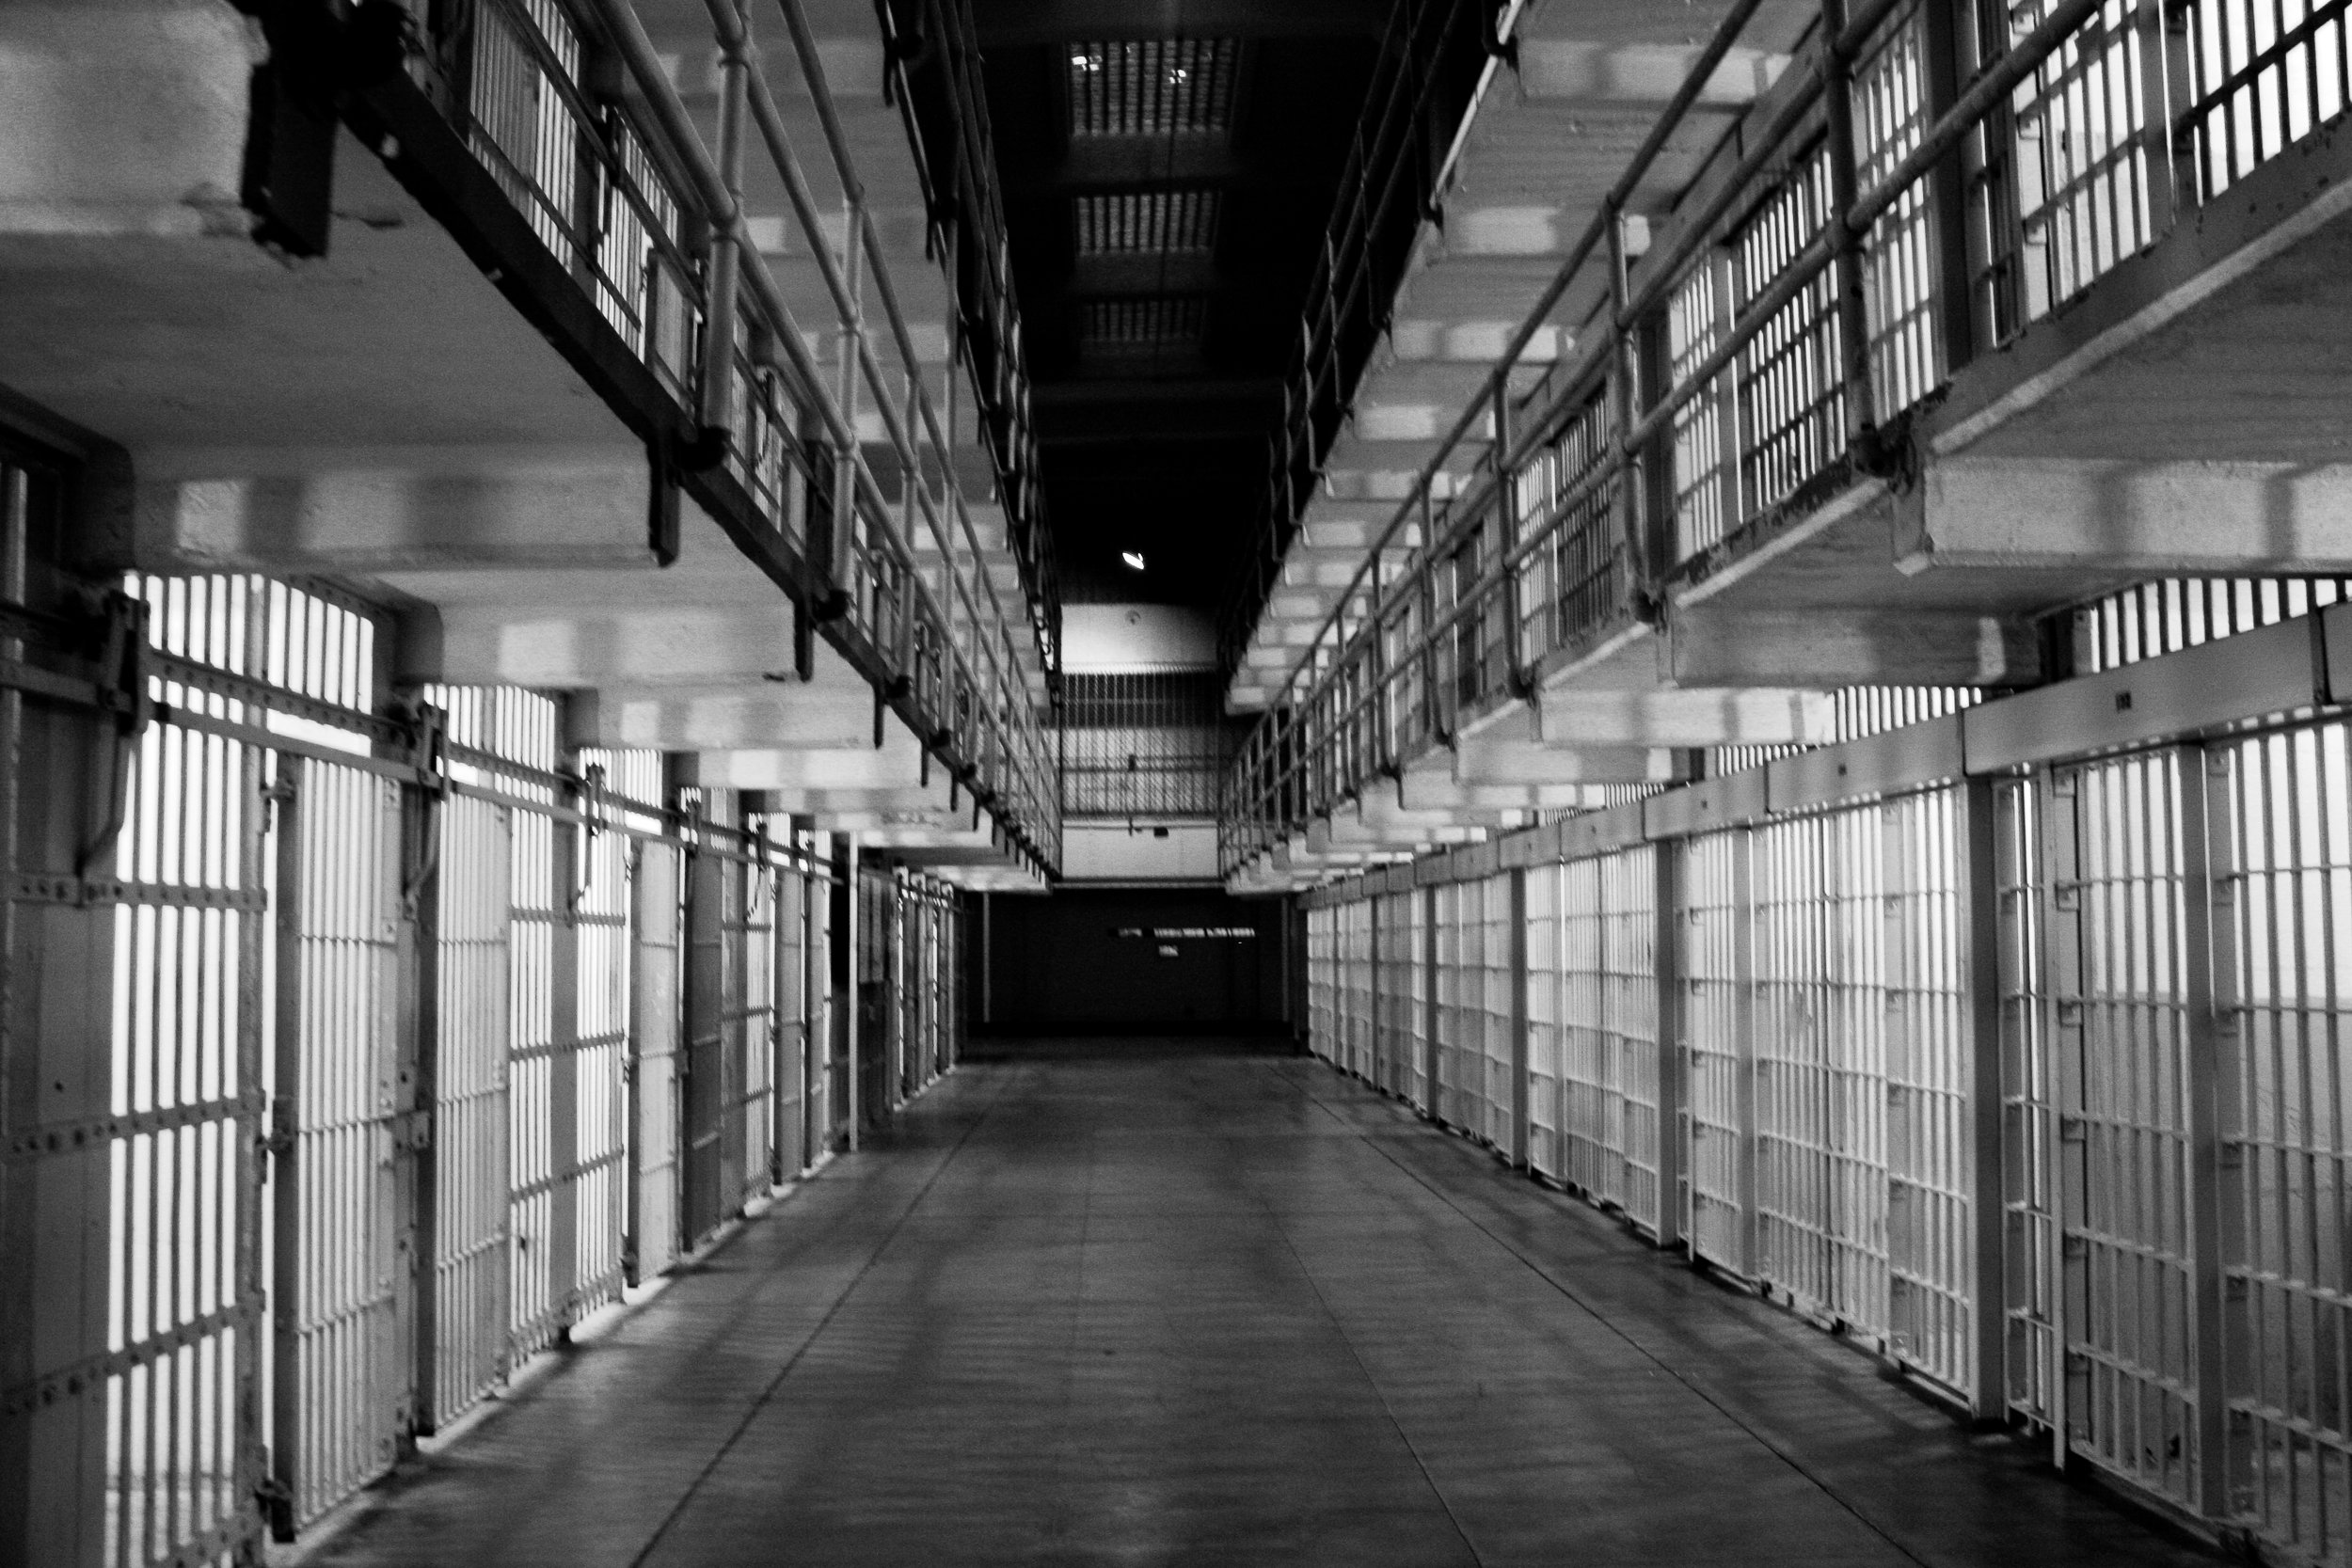 Due to many compounding factors, prison crowding is on the rise and it causes problems for both the prisoners and staff members.   Charlie Beldon/Flickr  (CC BY-NC 2.0)